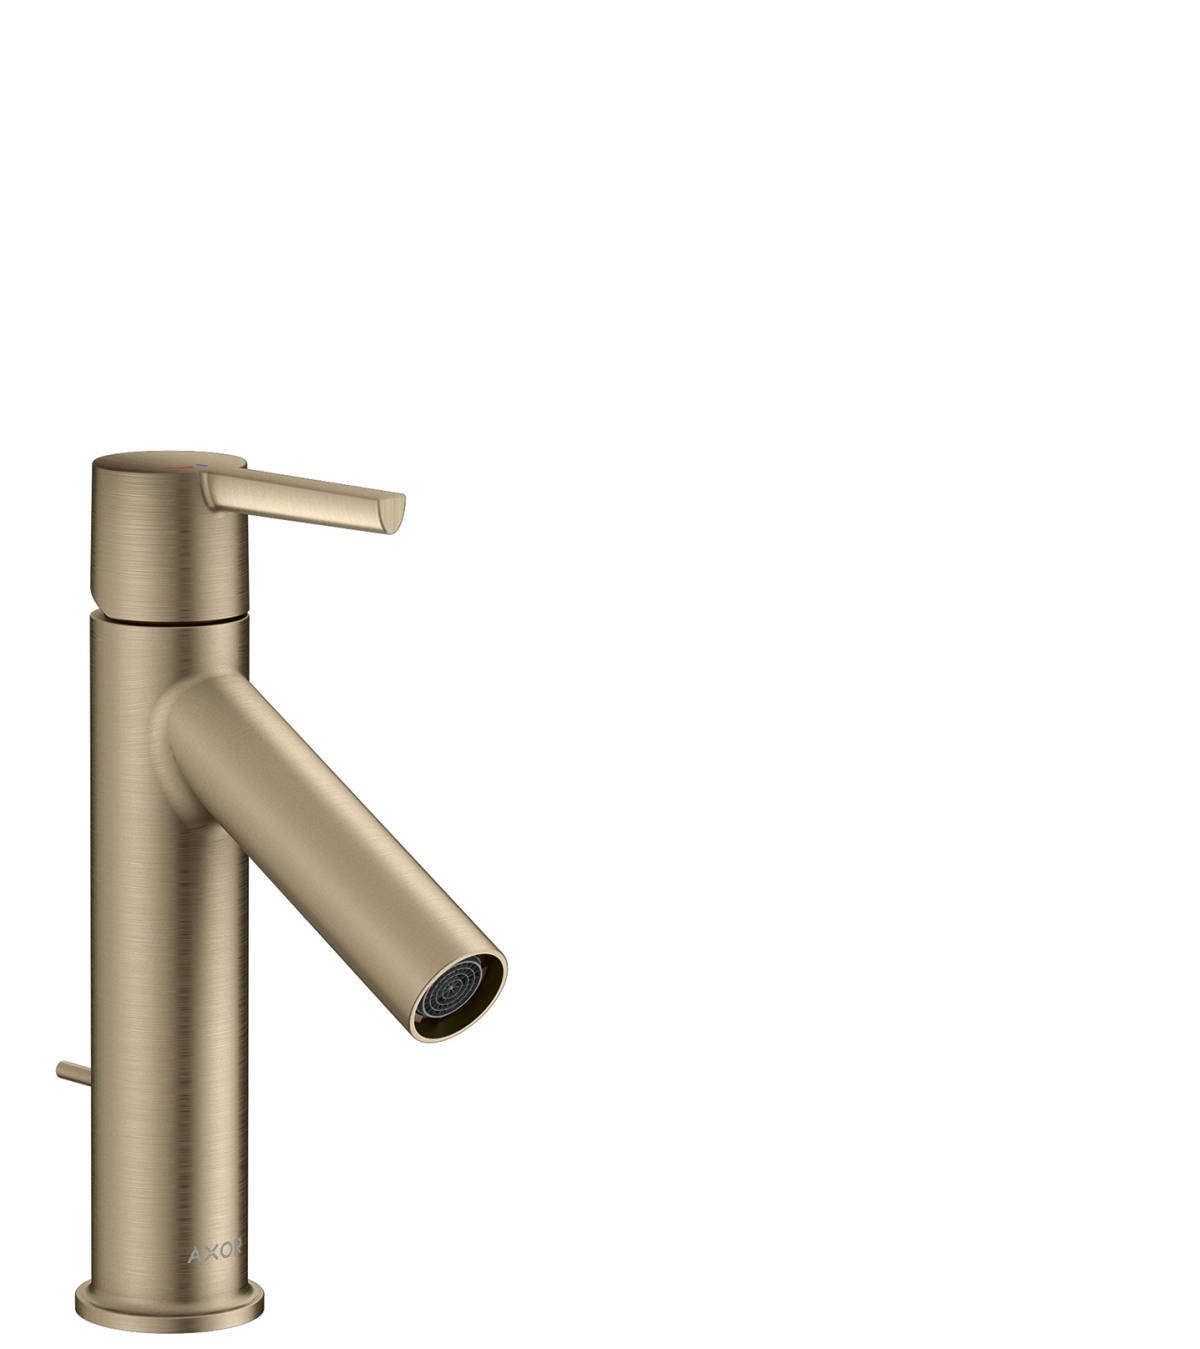 Single lever basin mixer 100 CoolStart with lever handle and pop-up waste set, Brushed Nickel, 10007820